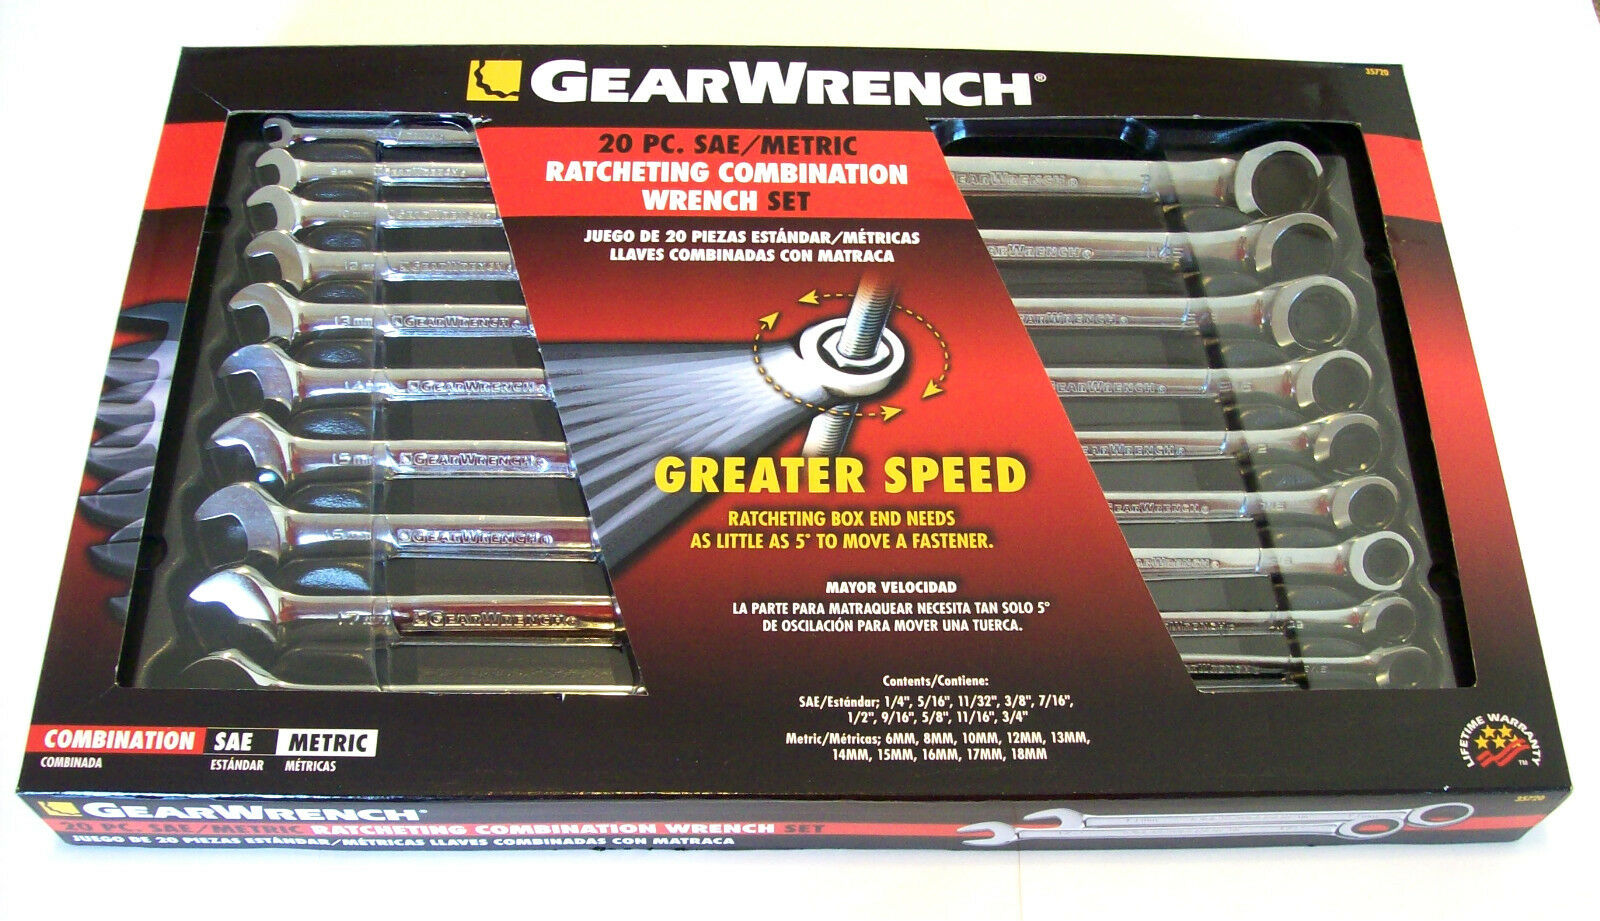 20pc GEARWRENCH RATCHETING COMBINATION WRENCH SET SAE METRIC